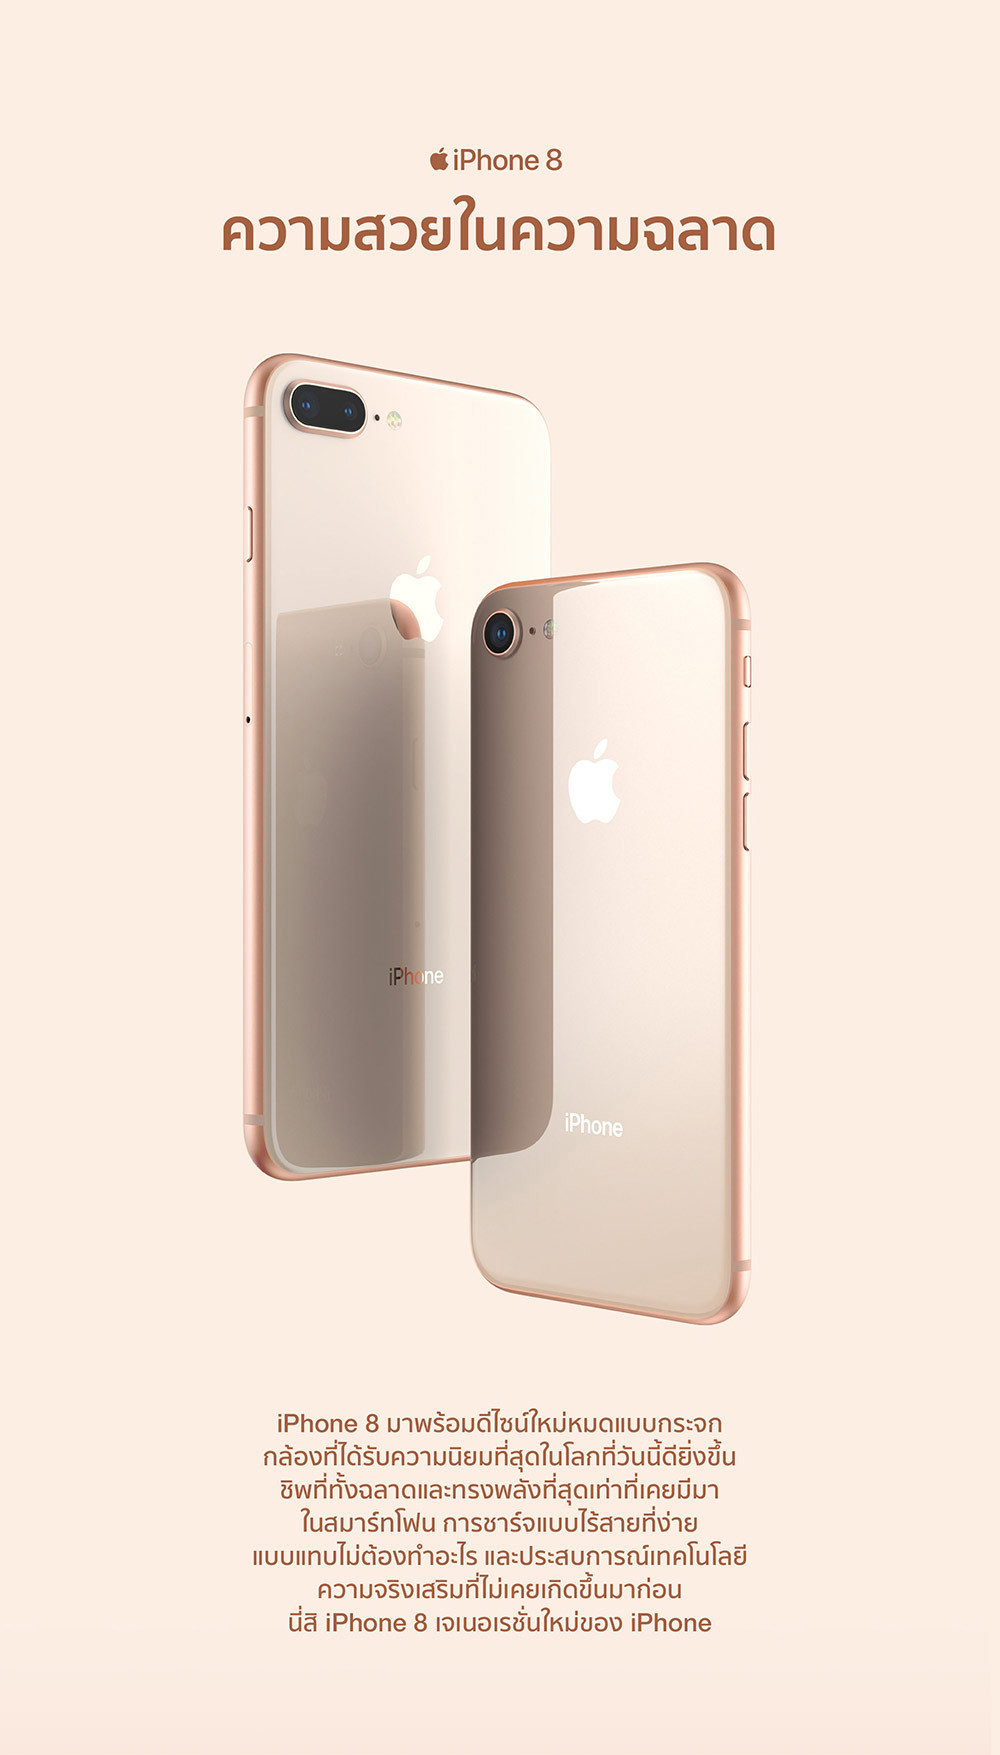 longpage-iphone8-01.jpg